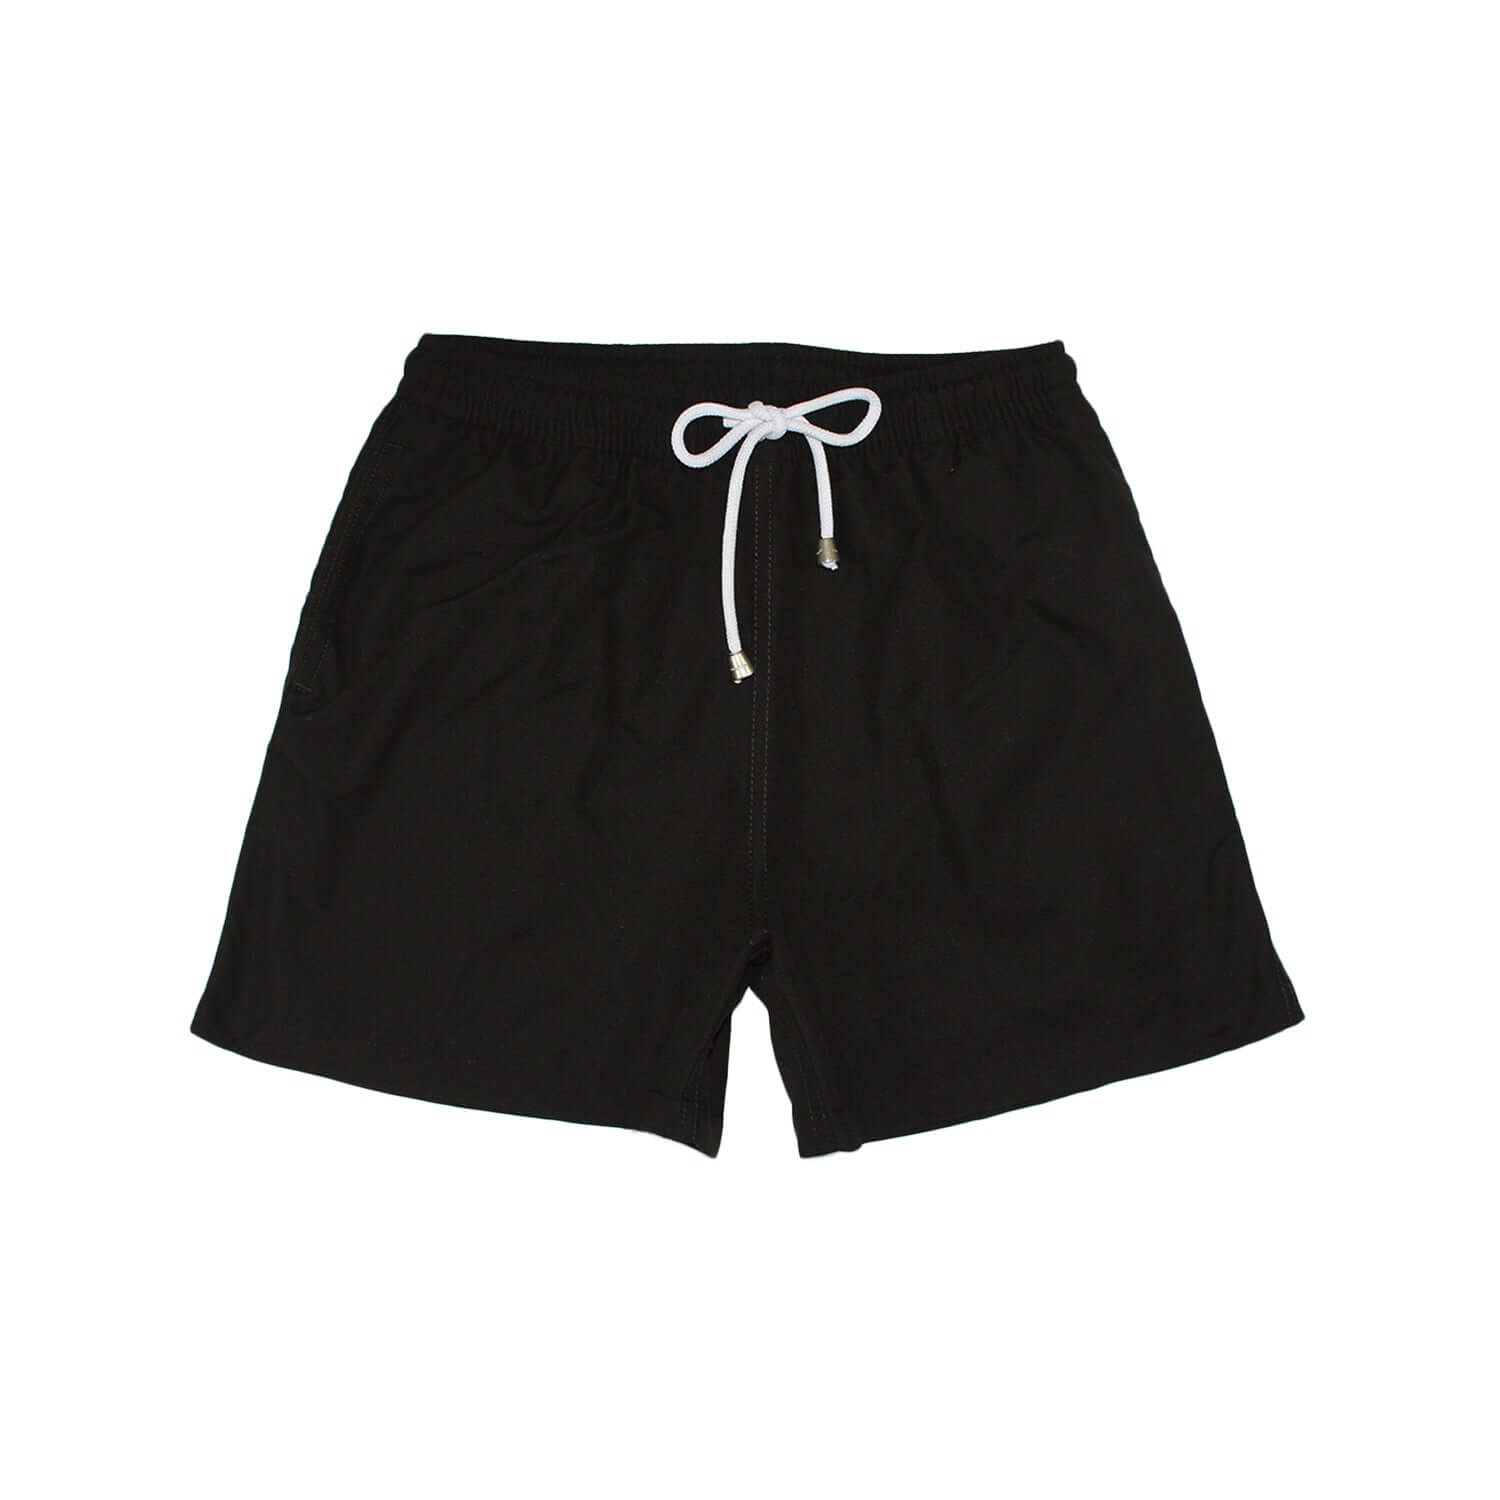 SOLID BLACK - Clorofila Sea Wear